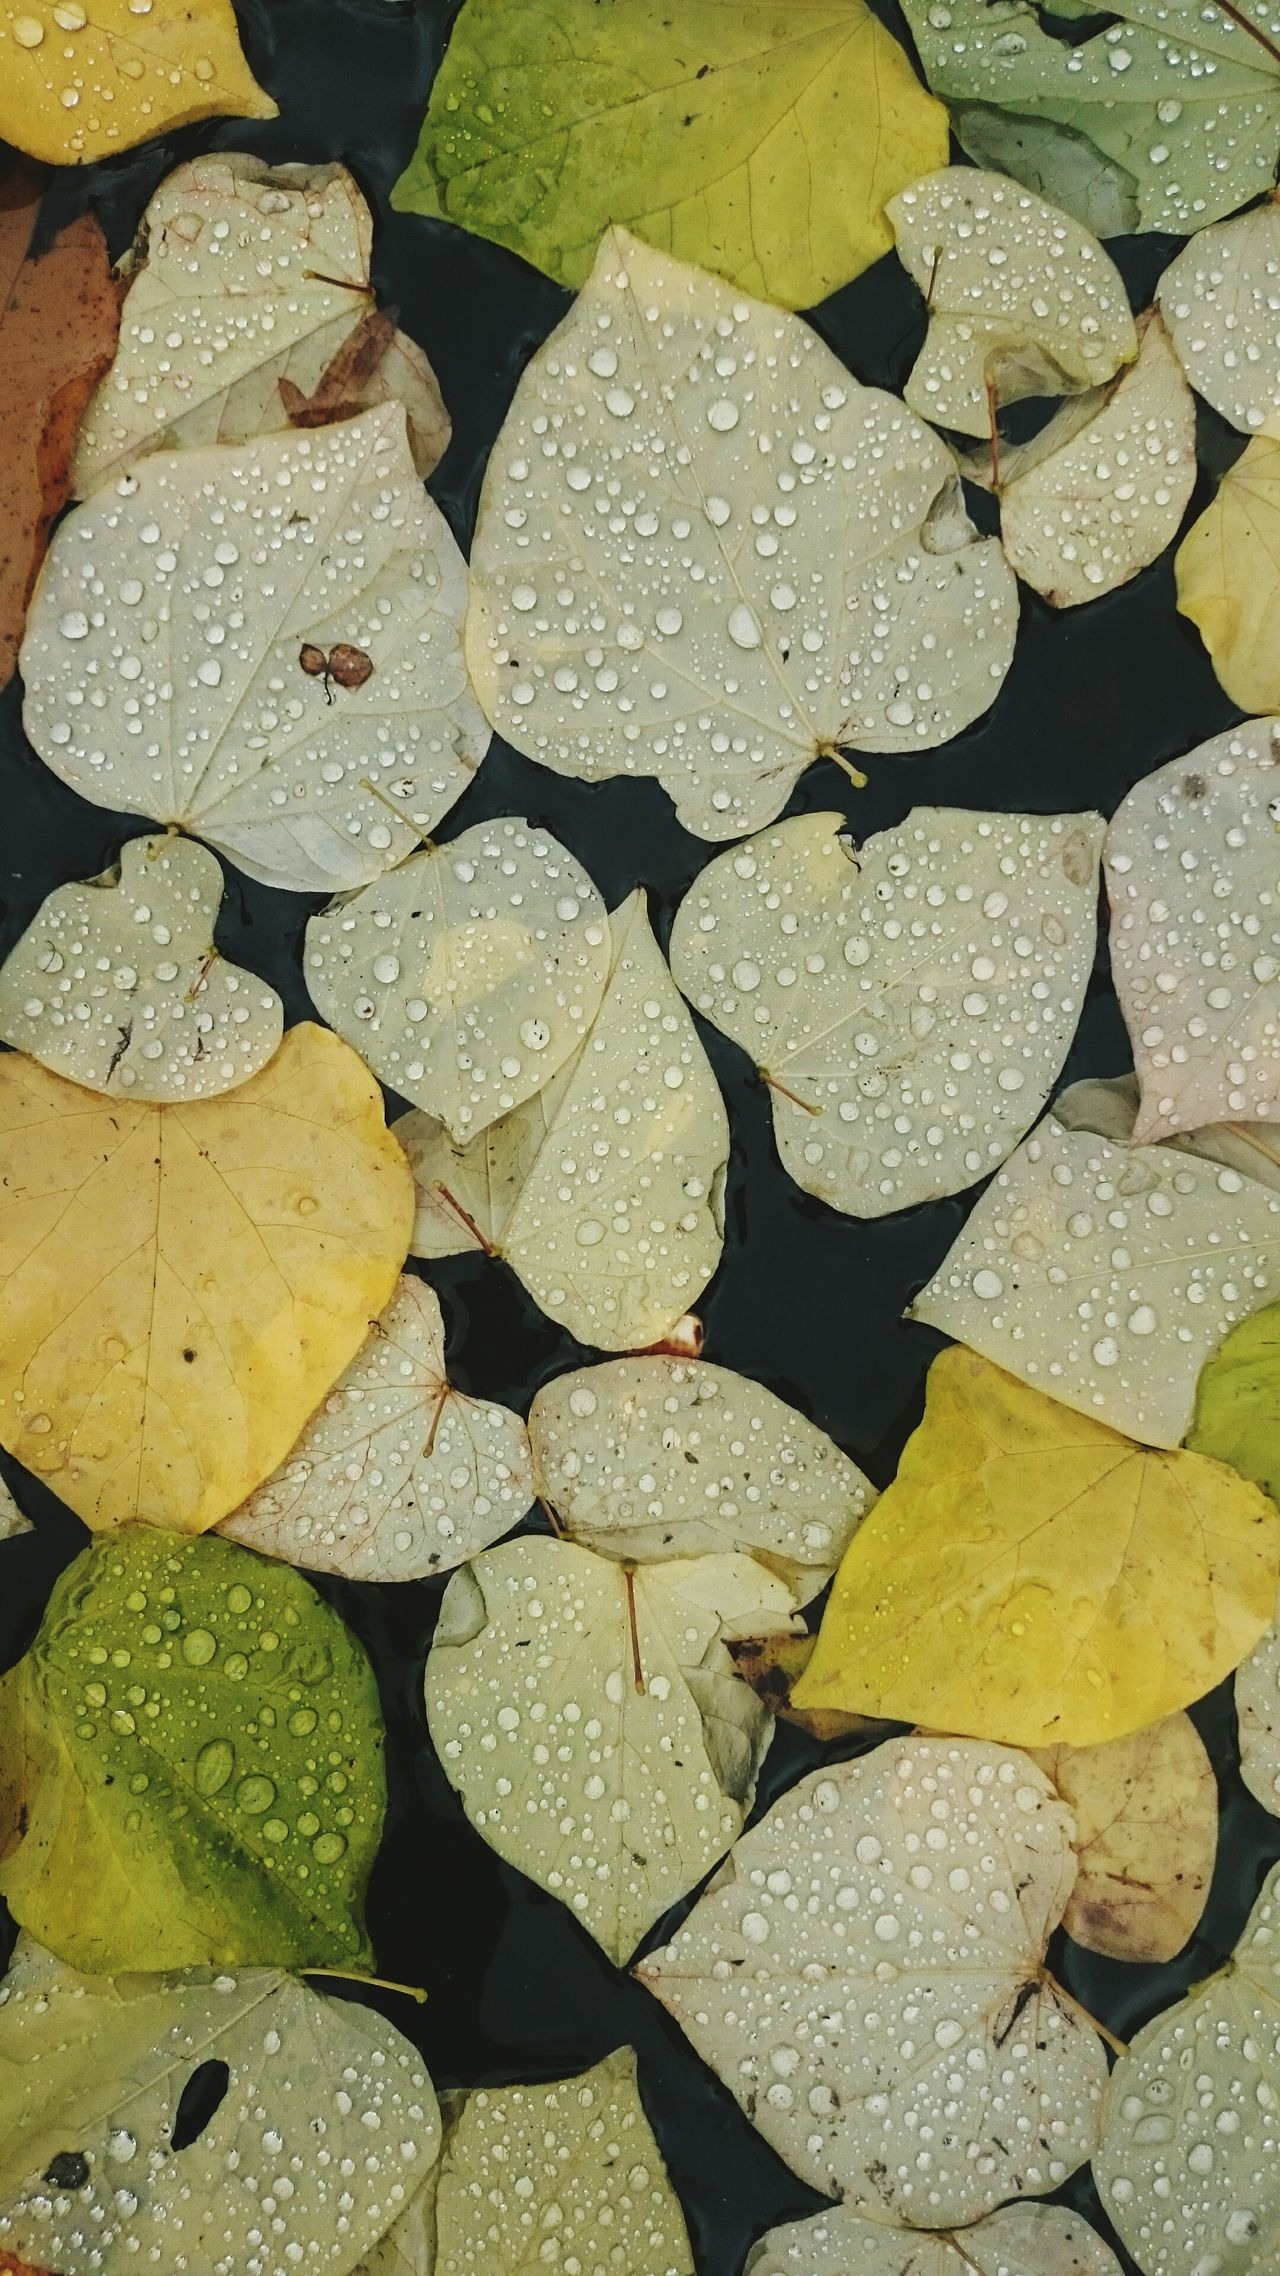 Fresh, cold and wet. Fresh Freshness Autumn Autumn Colors Autumn Leaves Leaf Leaves Close-up Nature Backgrounds Full Frame No People Outdoors Weather Rainy Raindrops Wet Droplets EyeEm Best Shots Beauty In Nature Water Herbst Background Colors Beautifully Organized